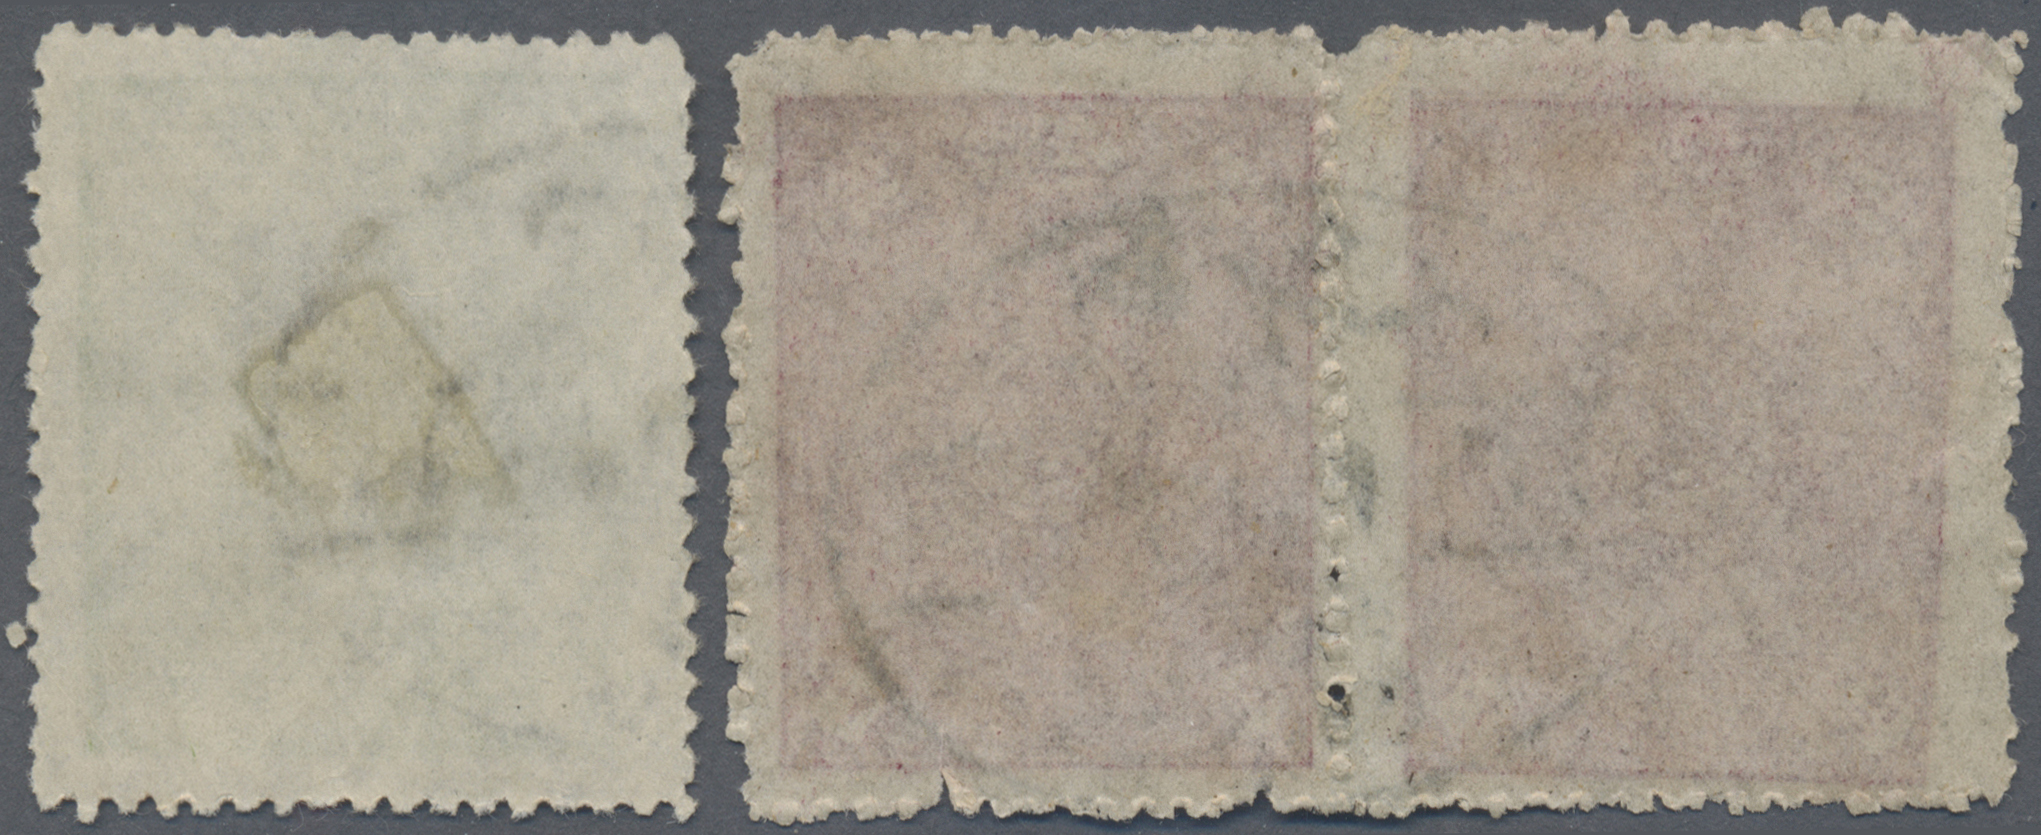 Lot 06214 - Afghanistan  -  Auktionshaus Christoph Gärtner GmbH & Co. KG Sale #46 Single lots Asia, Thematics, Overseas, Europe …